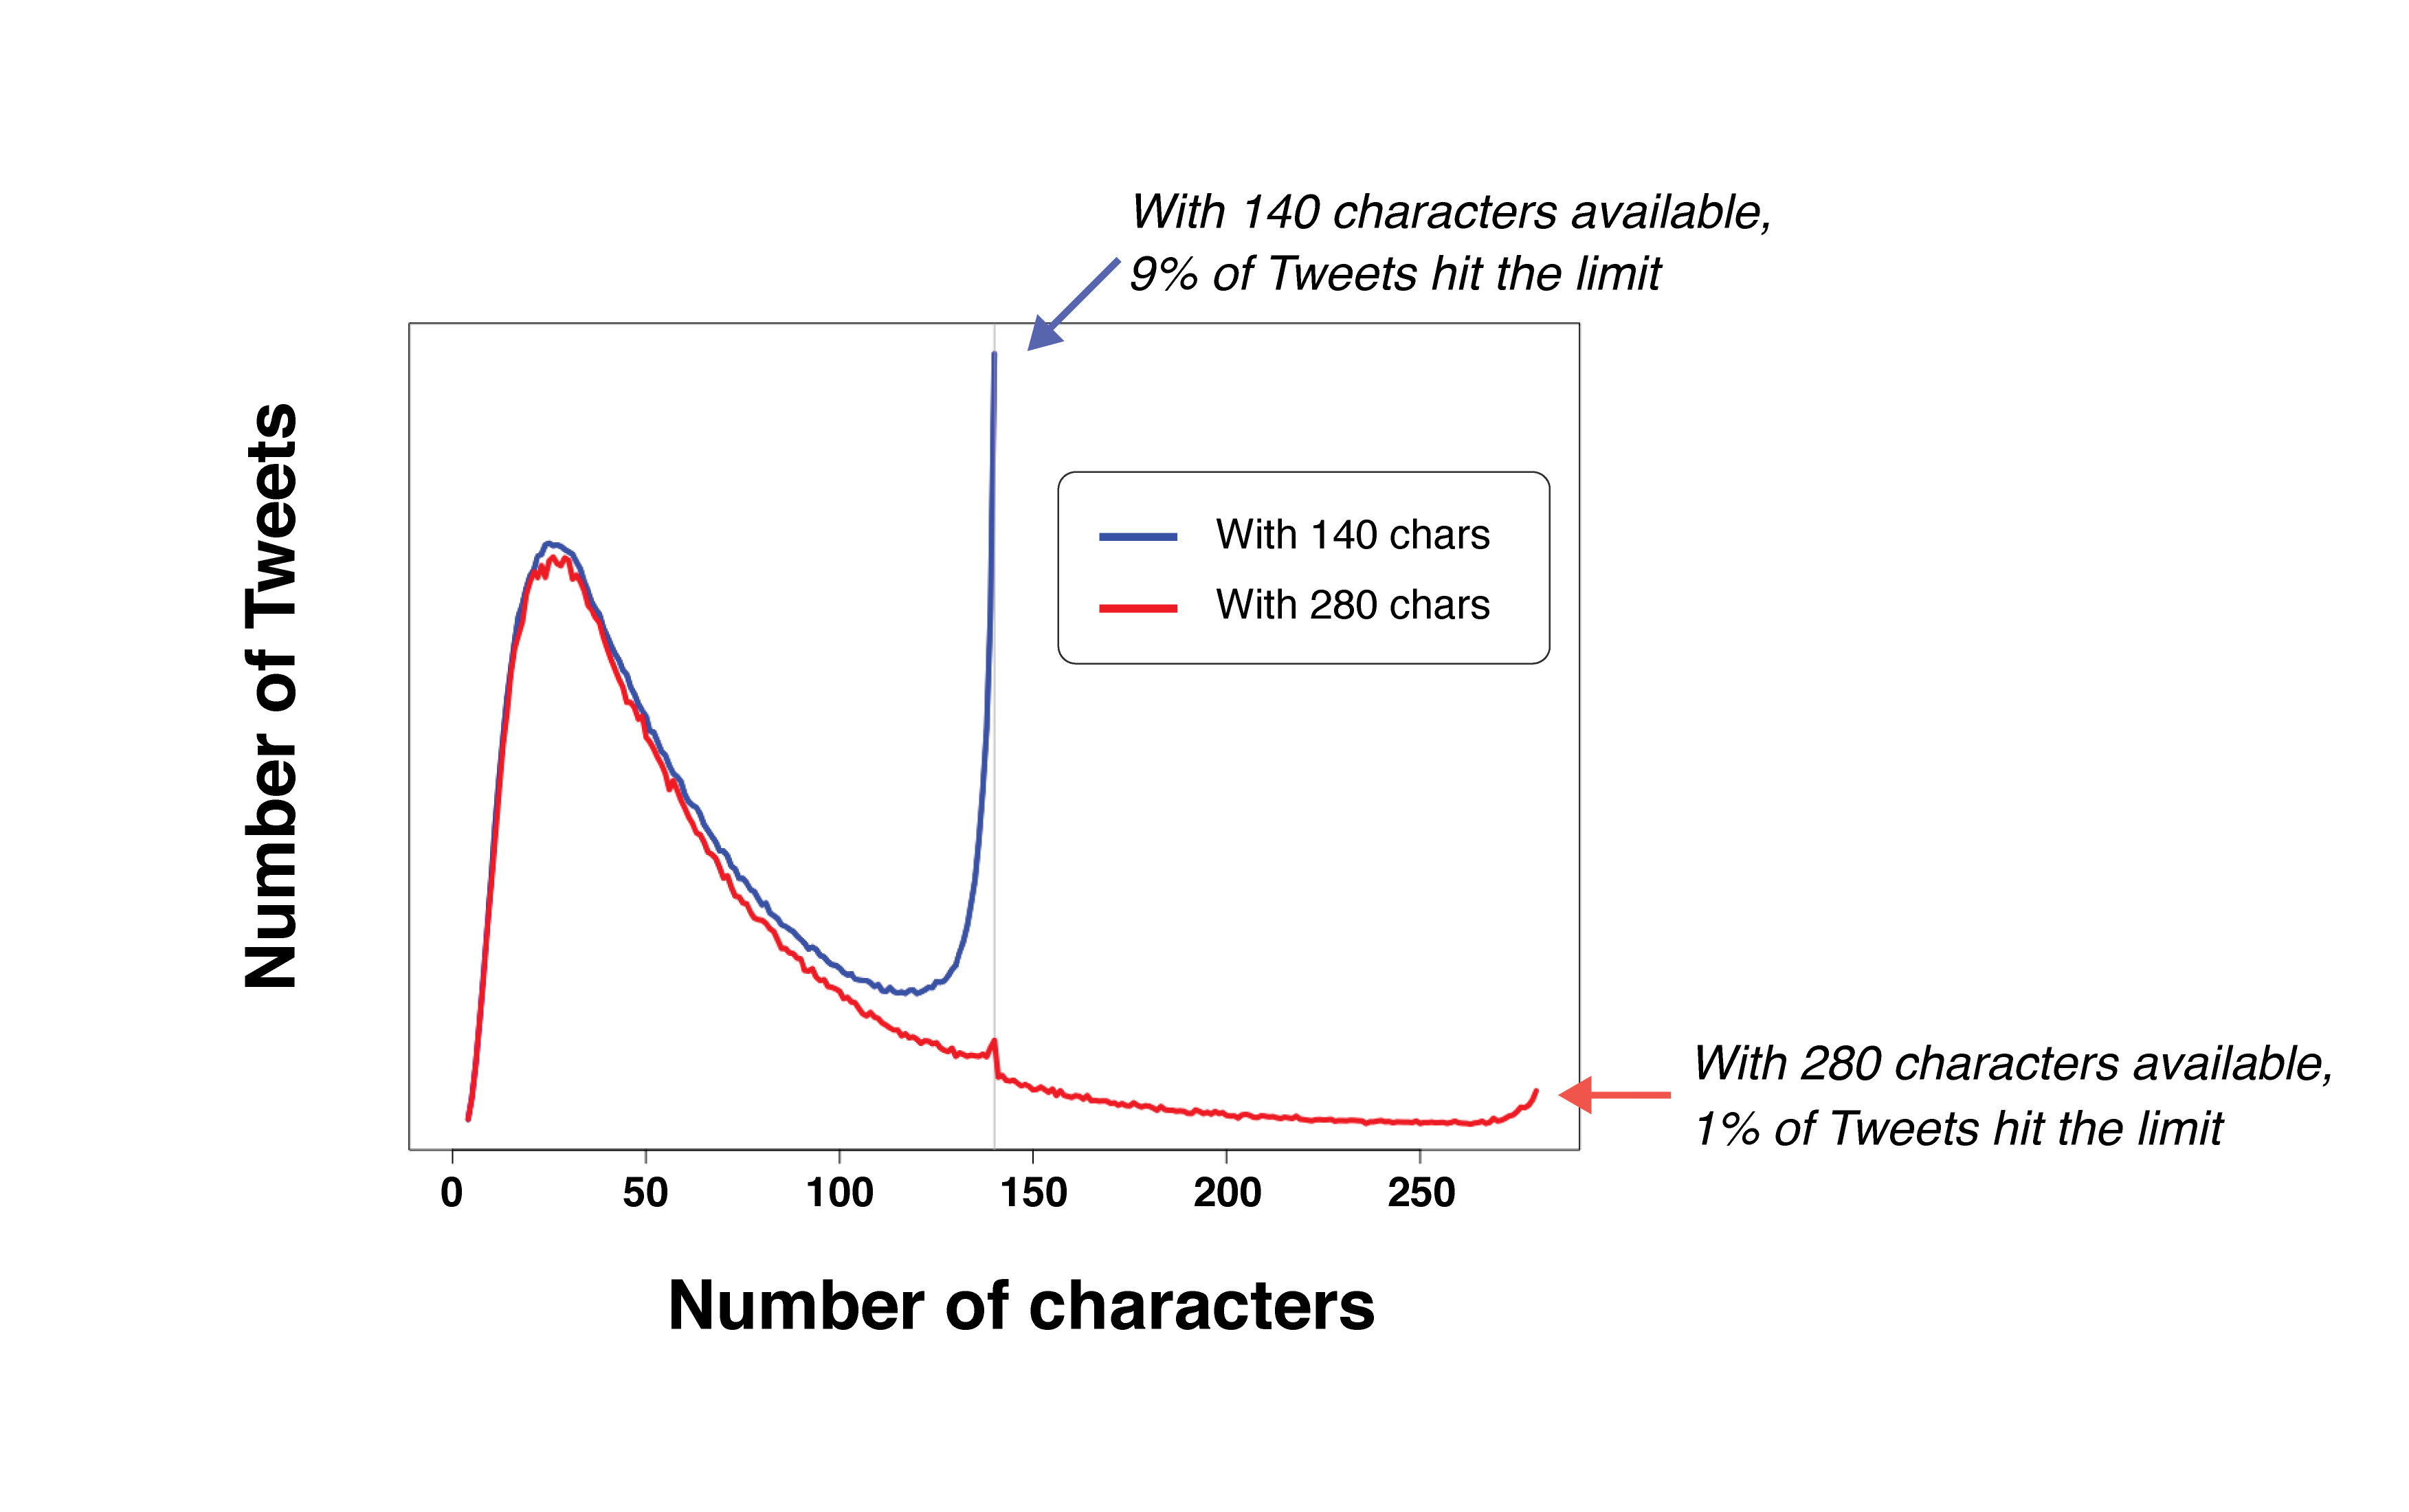 19a117d1e74 Twitter has concluded its beta test of 280 character Tweets and has rolled  out the feature to everyone. This comes with a new character counter that  ...